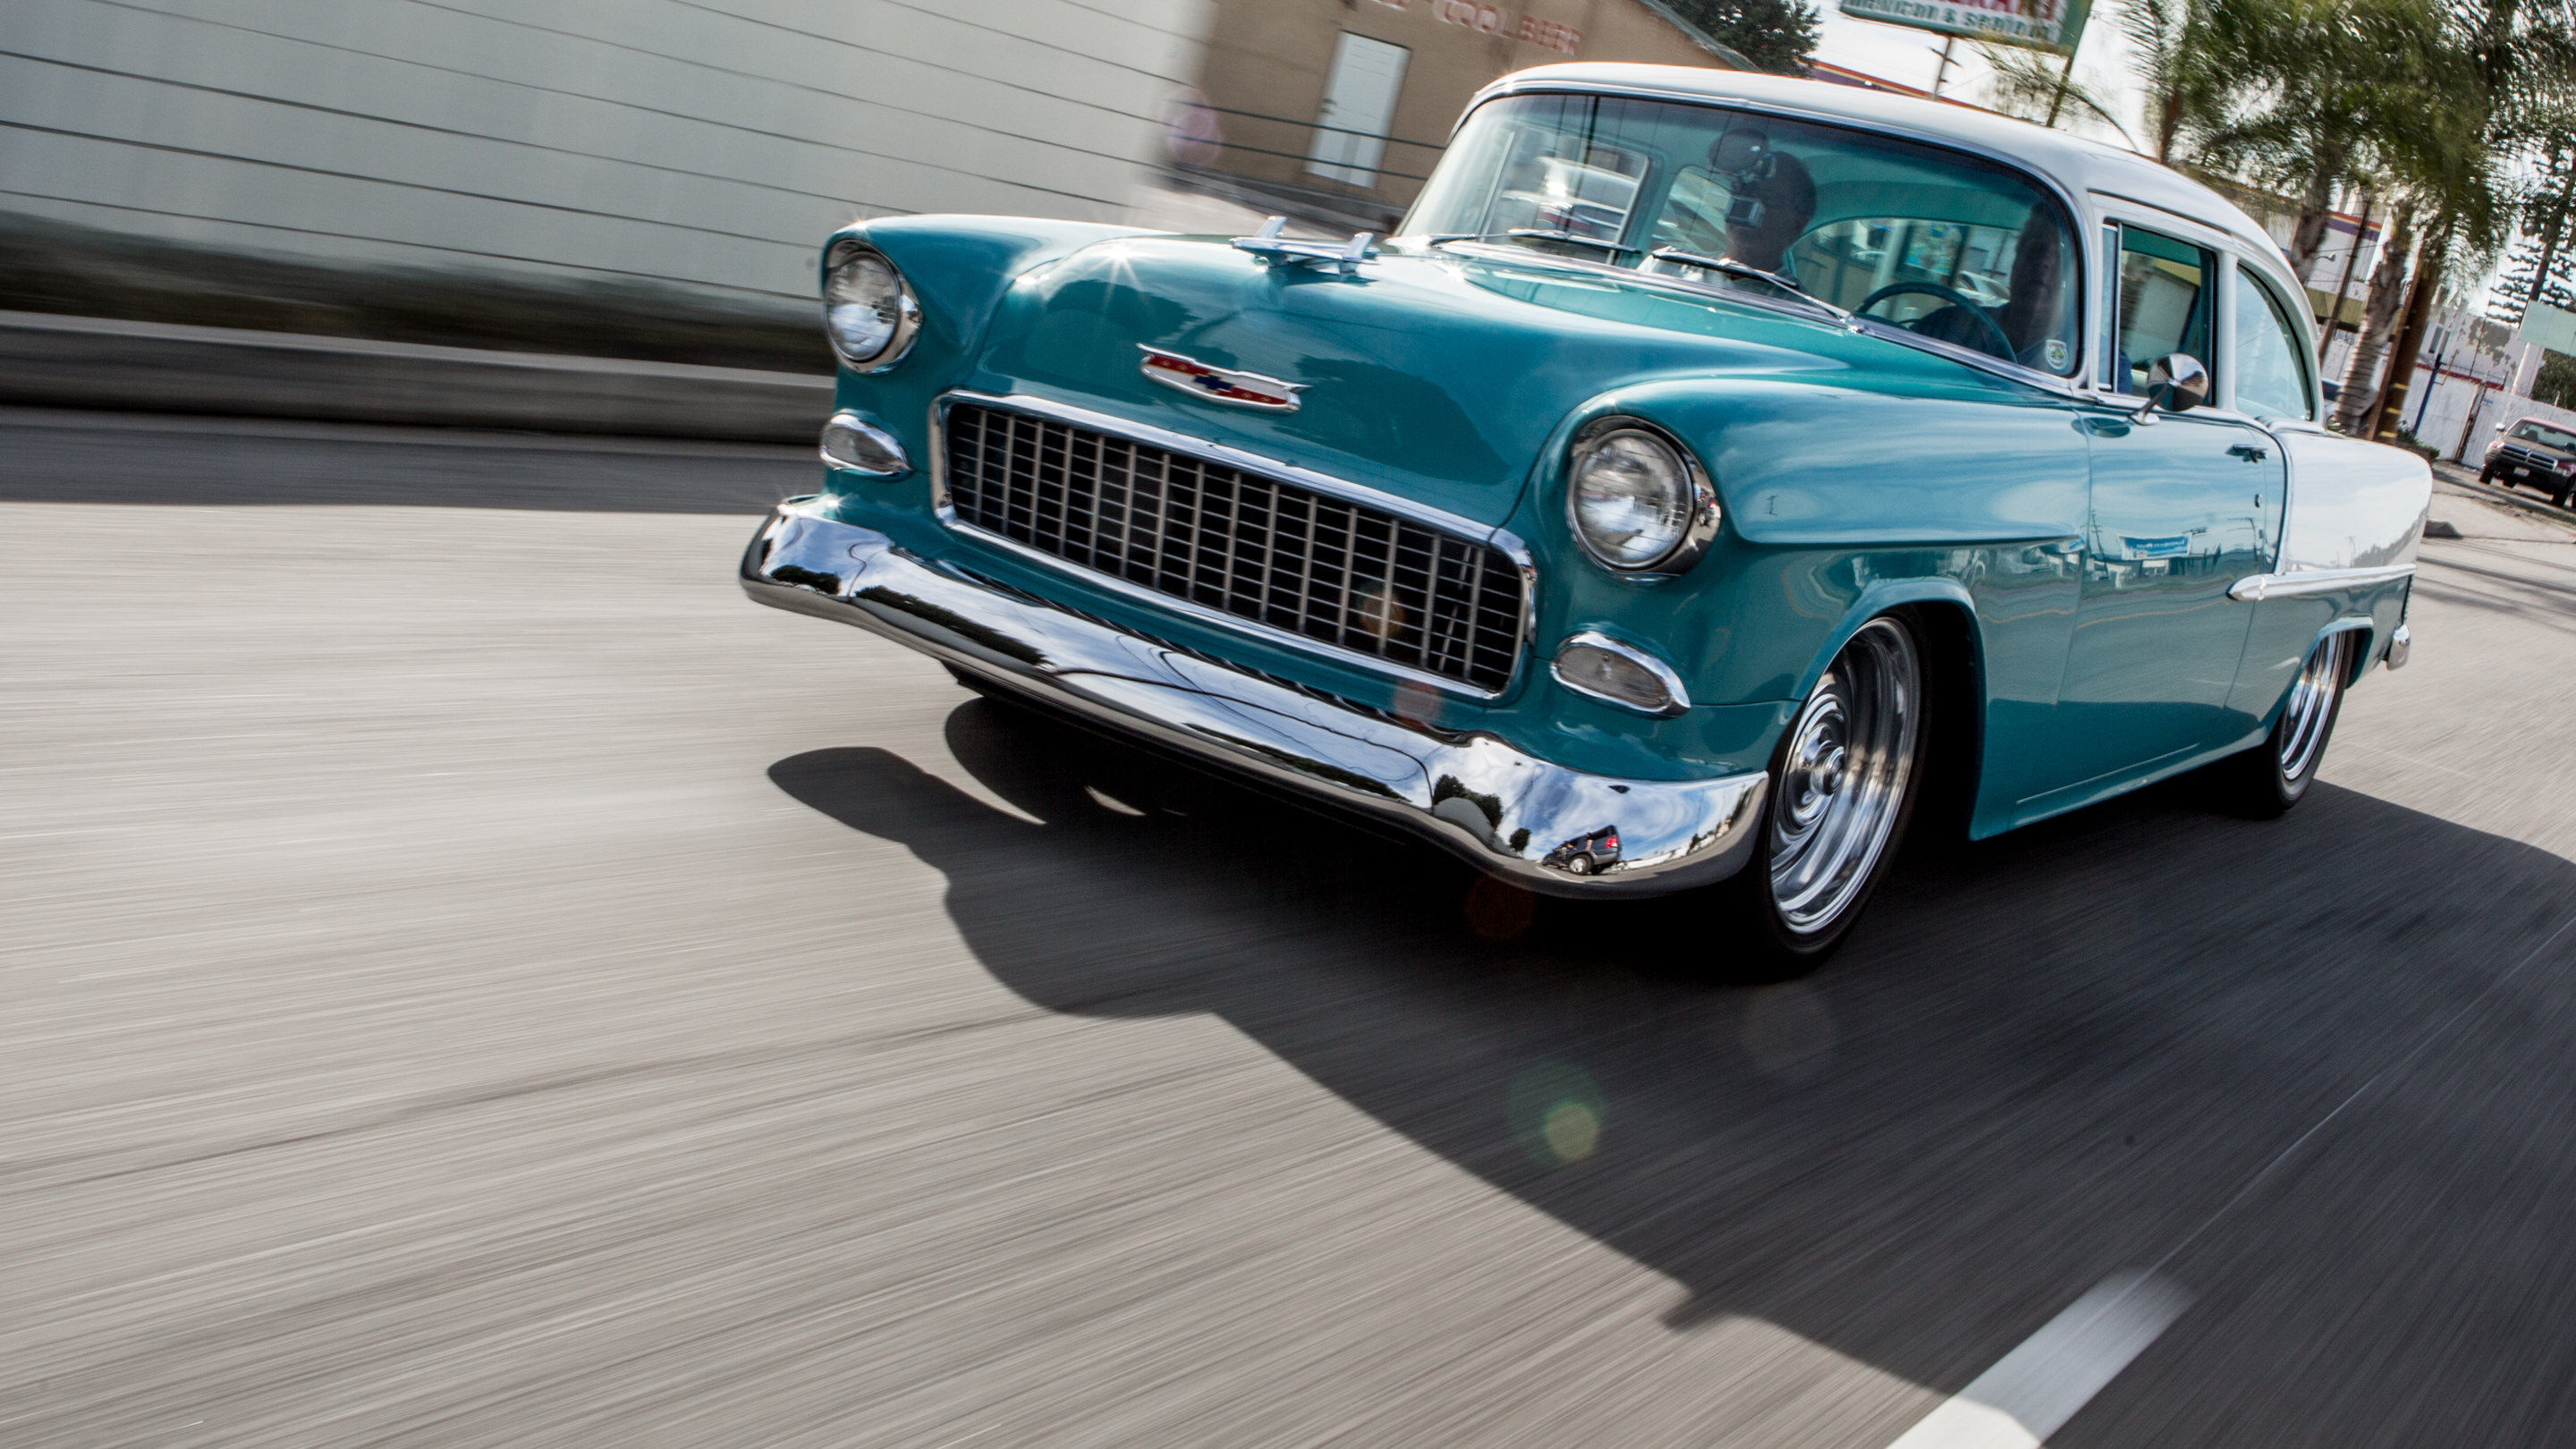 1955 Chevy Bel Air Original Price Karmashares Llc Leveraging Chevrolet 4 Door Watch Jay Lenos Garage Web Exclusive Belair 2 Coupe Nbc